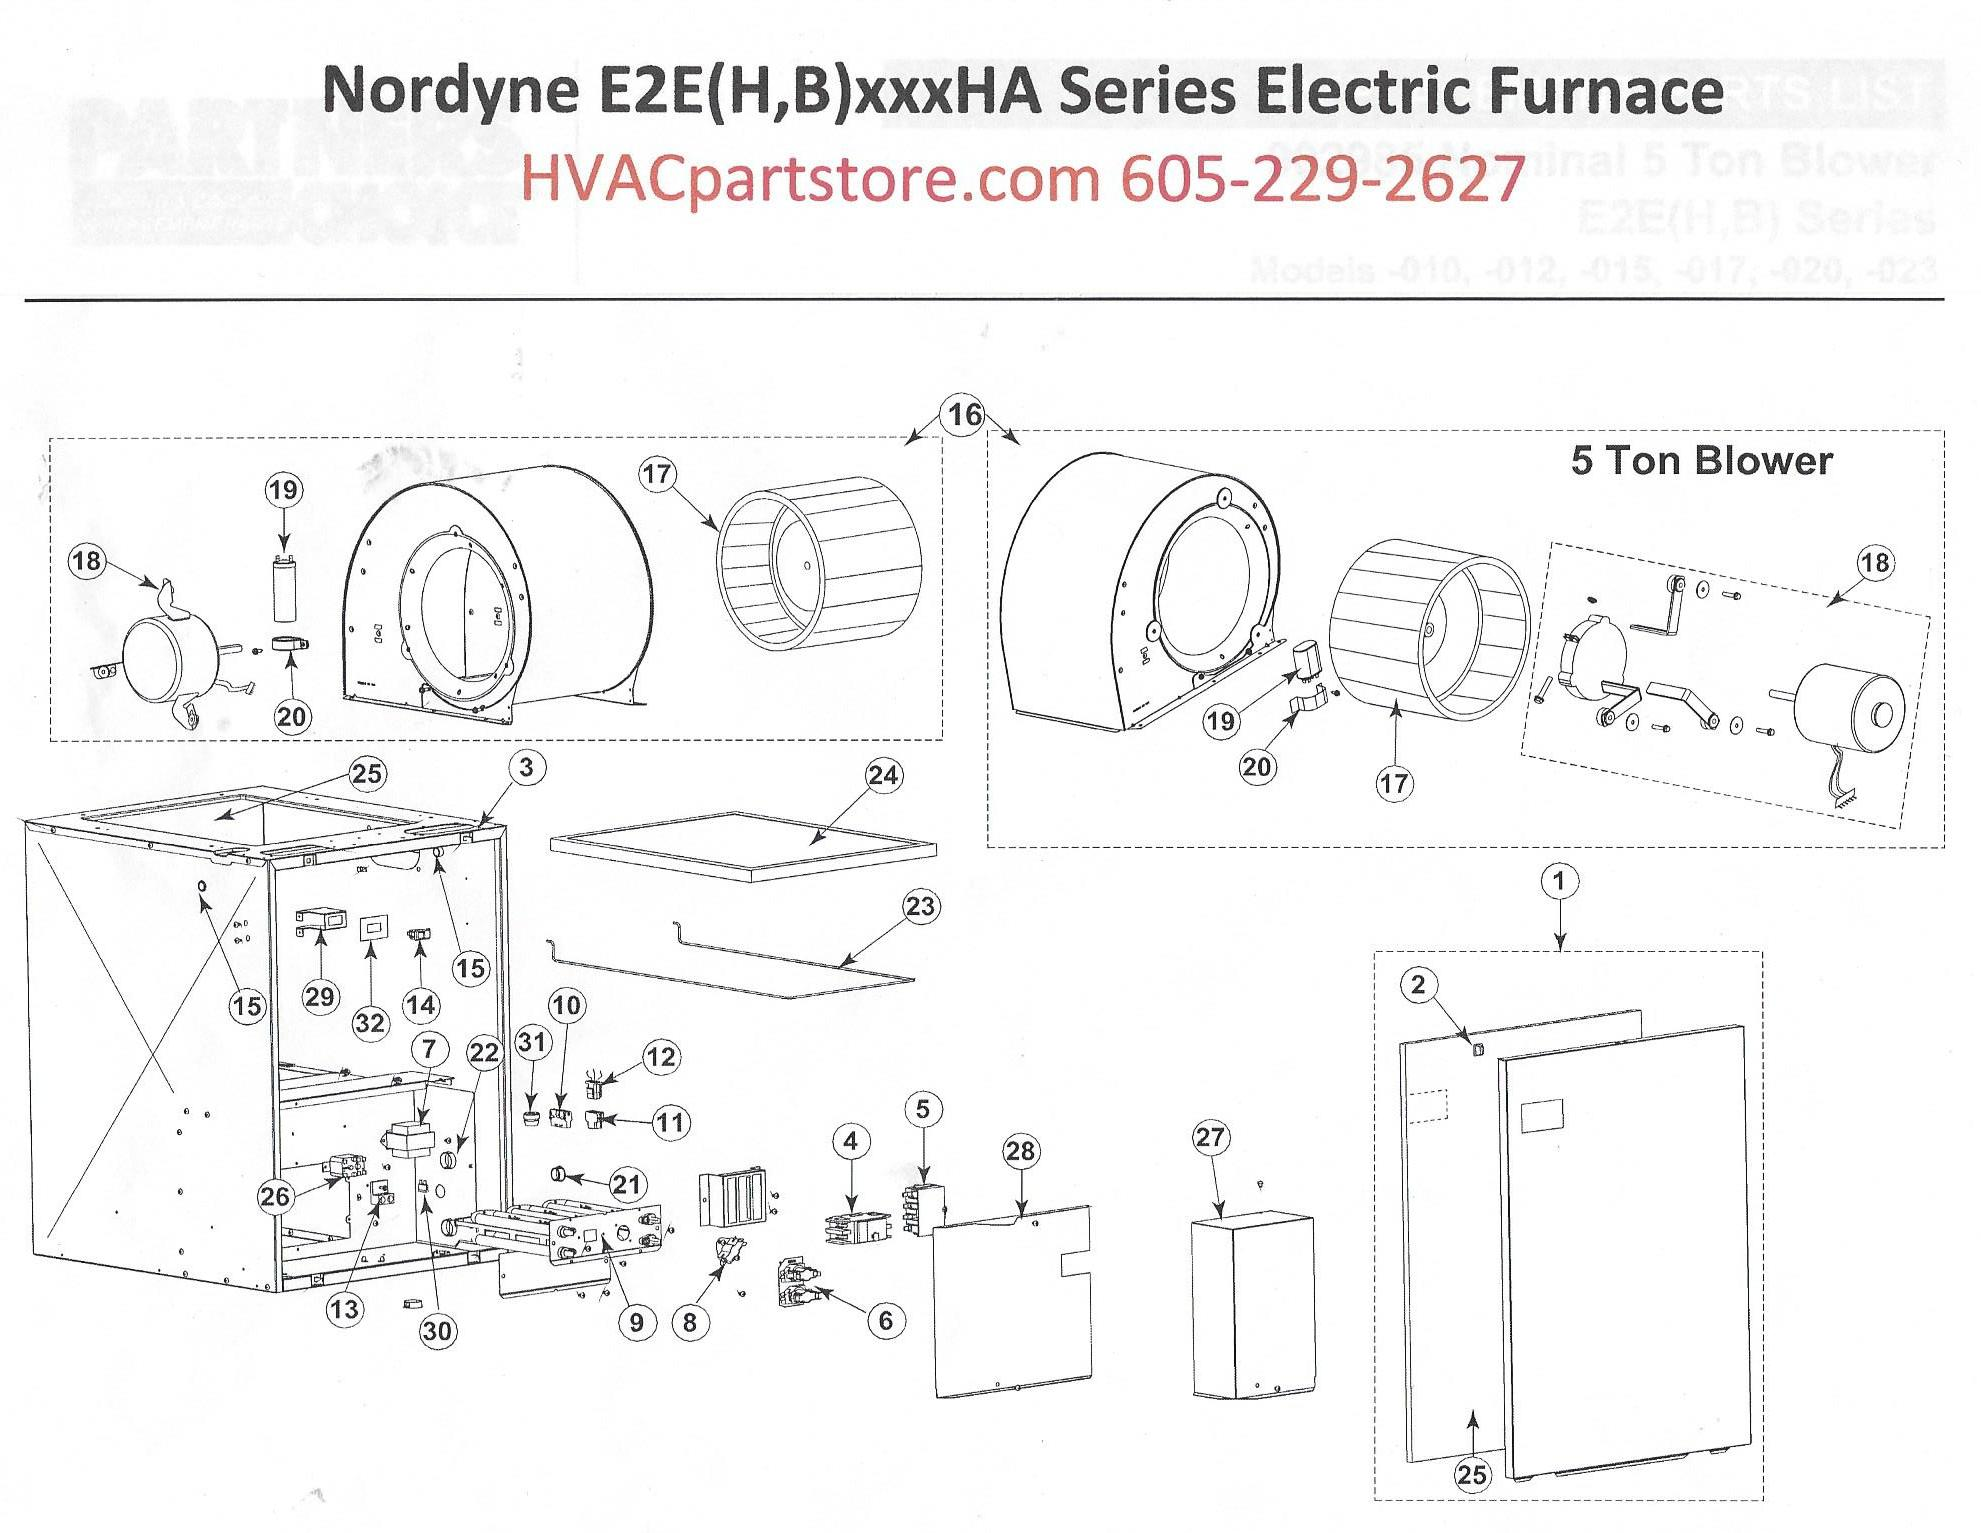 E2HADiagram_b4400f5e fcd1 43cd a422 4ef2ce8cde99?6326583503626438513 e2eb017ha nordyne electric furnace parts hvacpartstore Coleman Furnace Wiring Diagram at soozxer.org